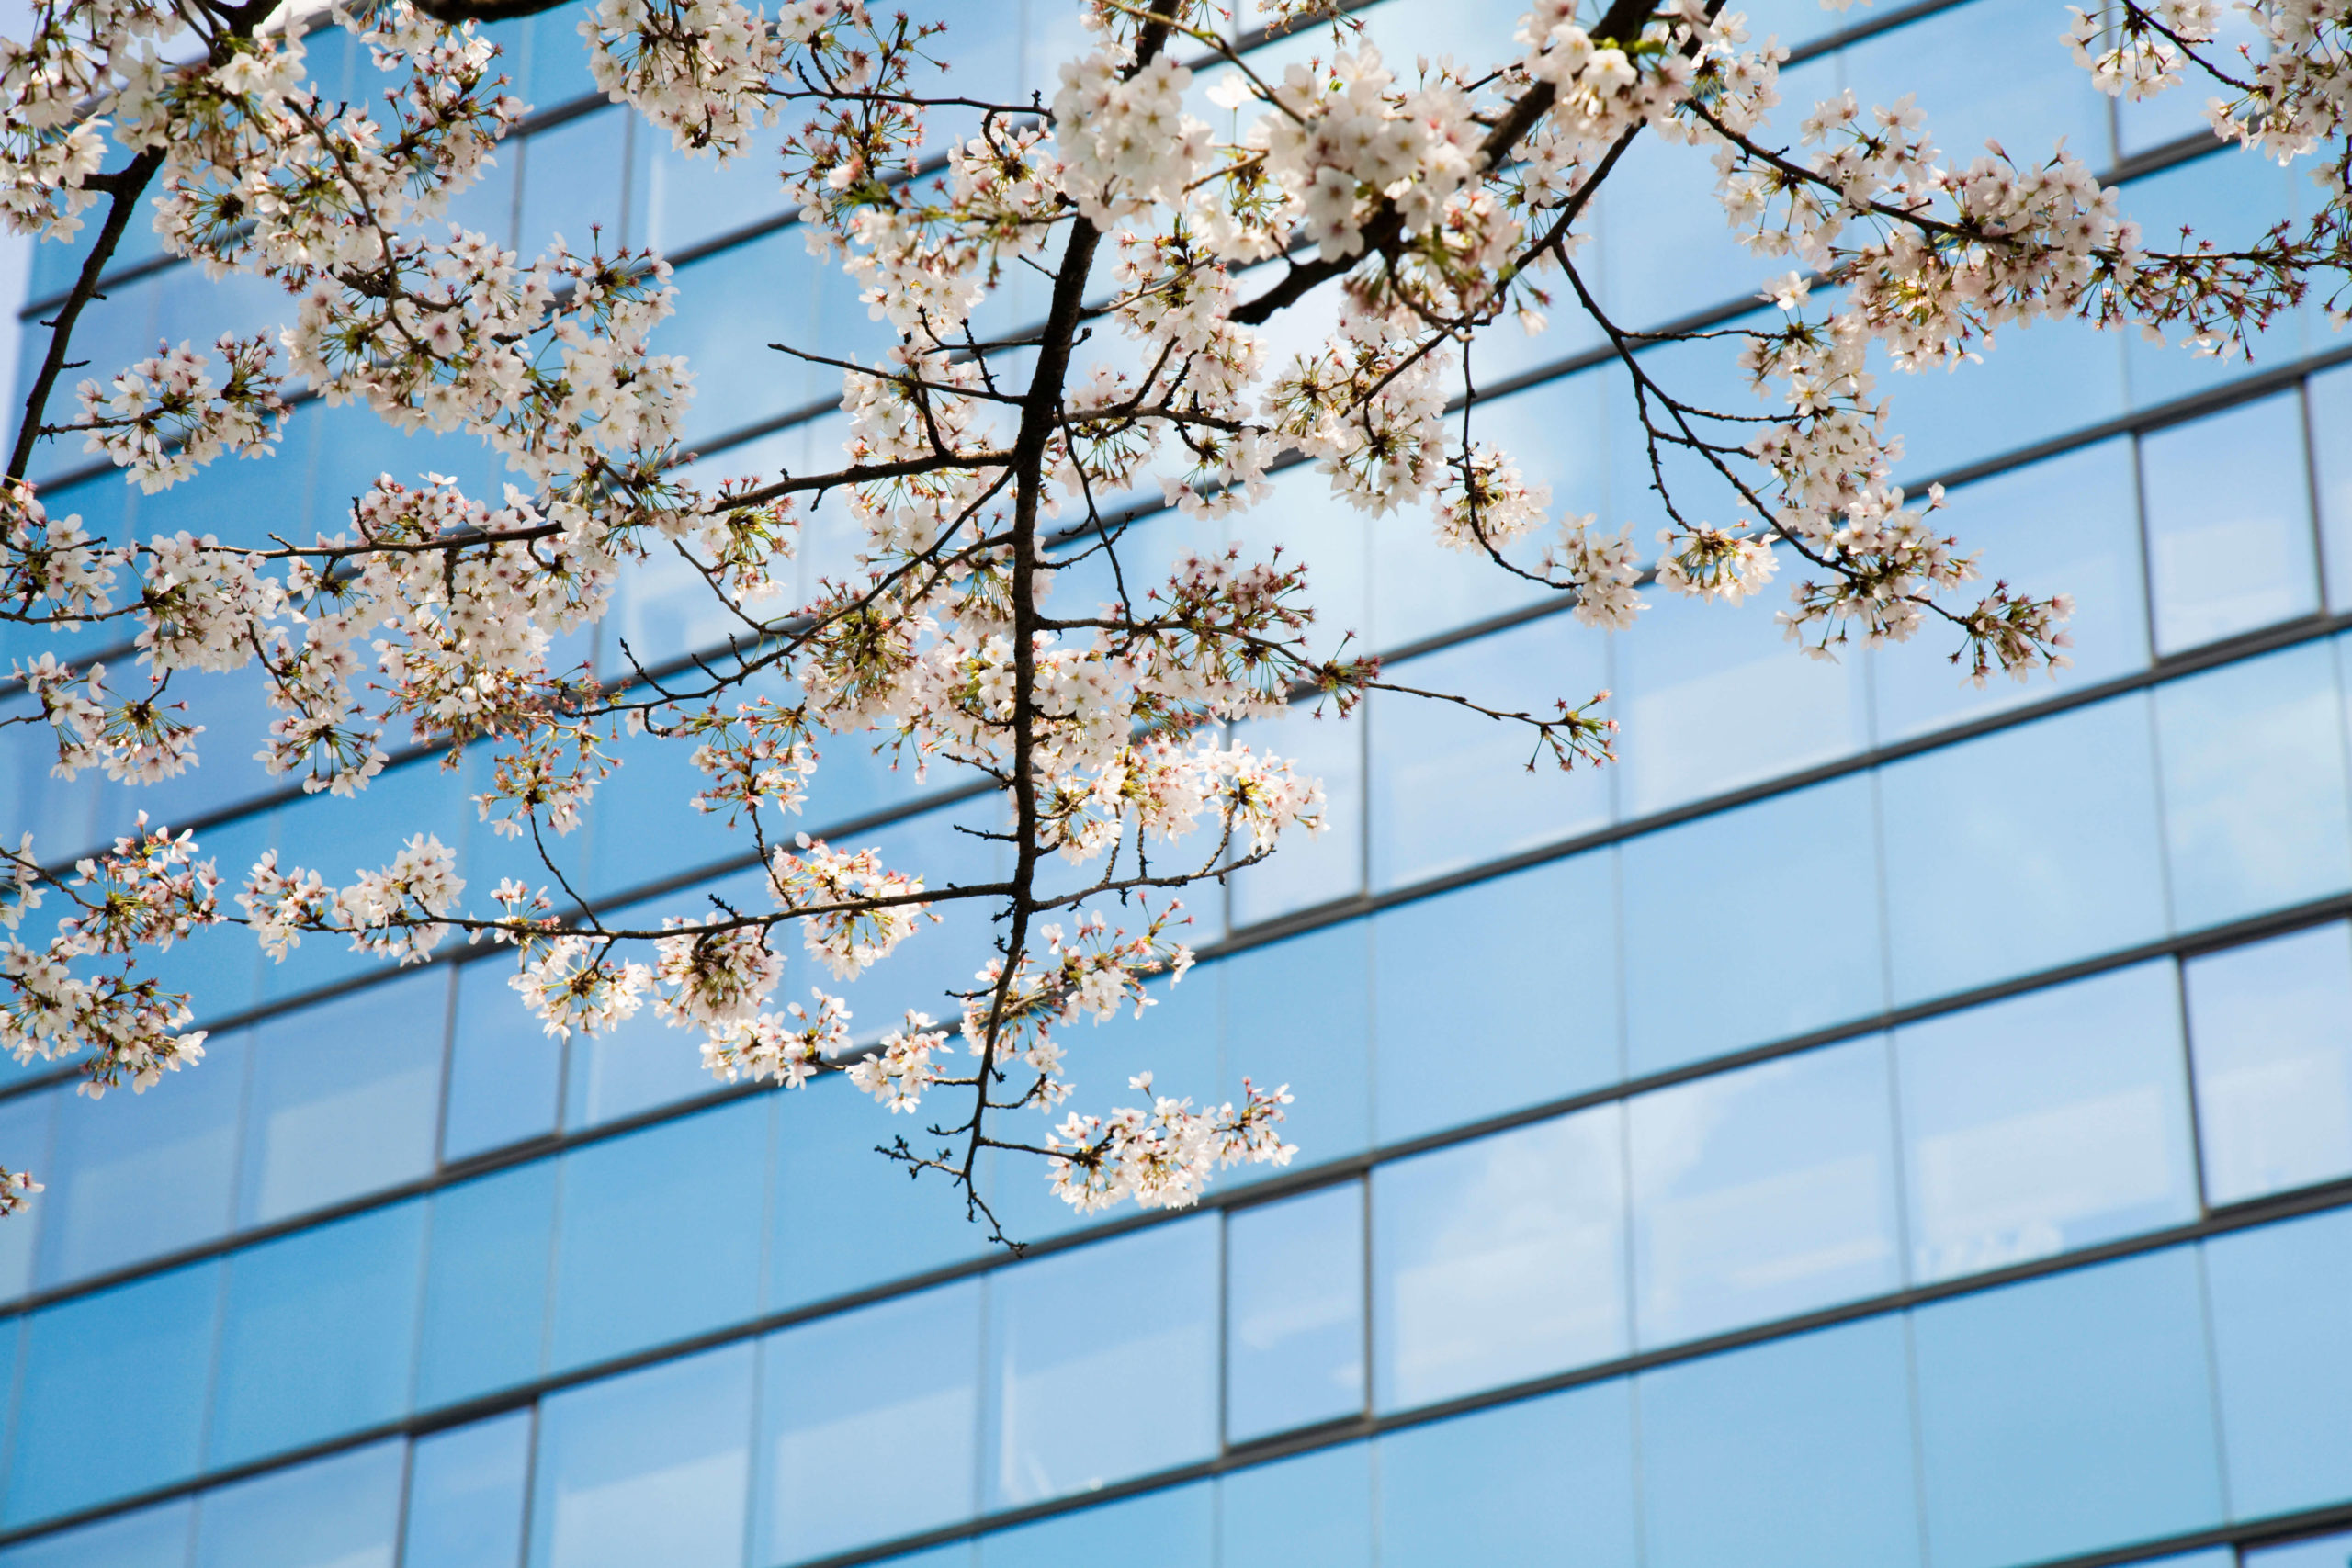 Spring in Japan and Europe